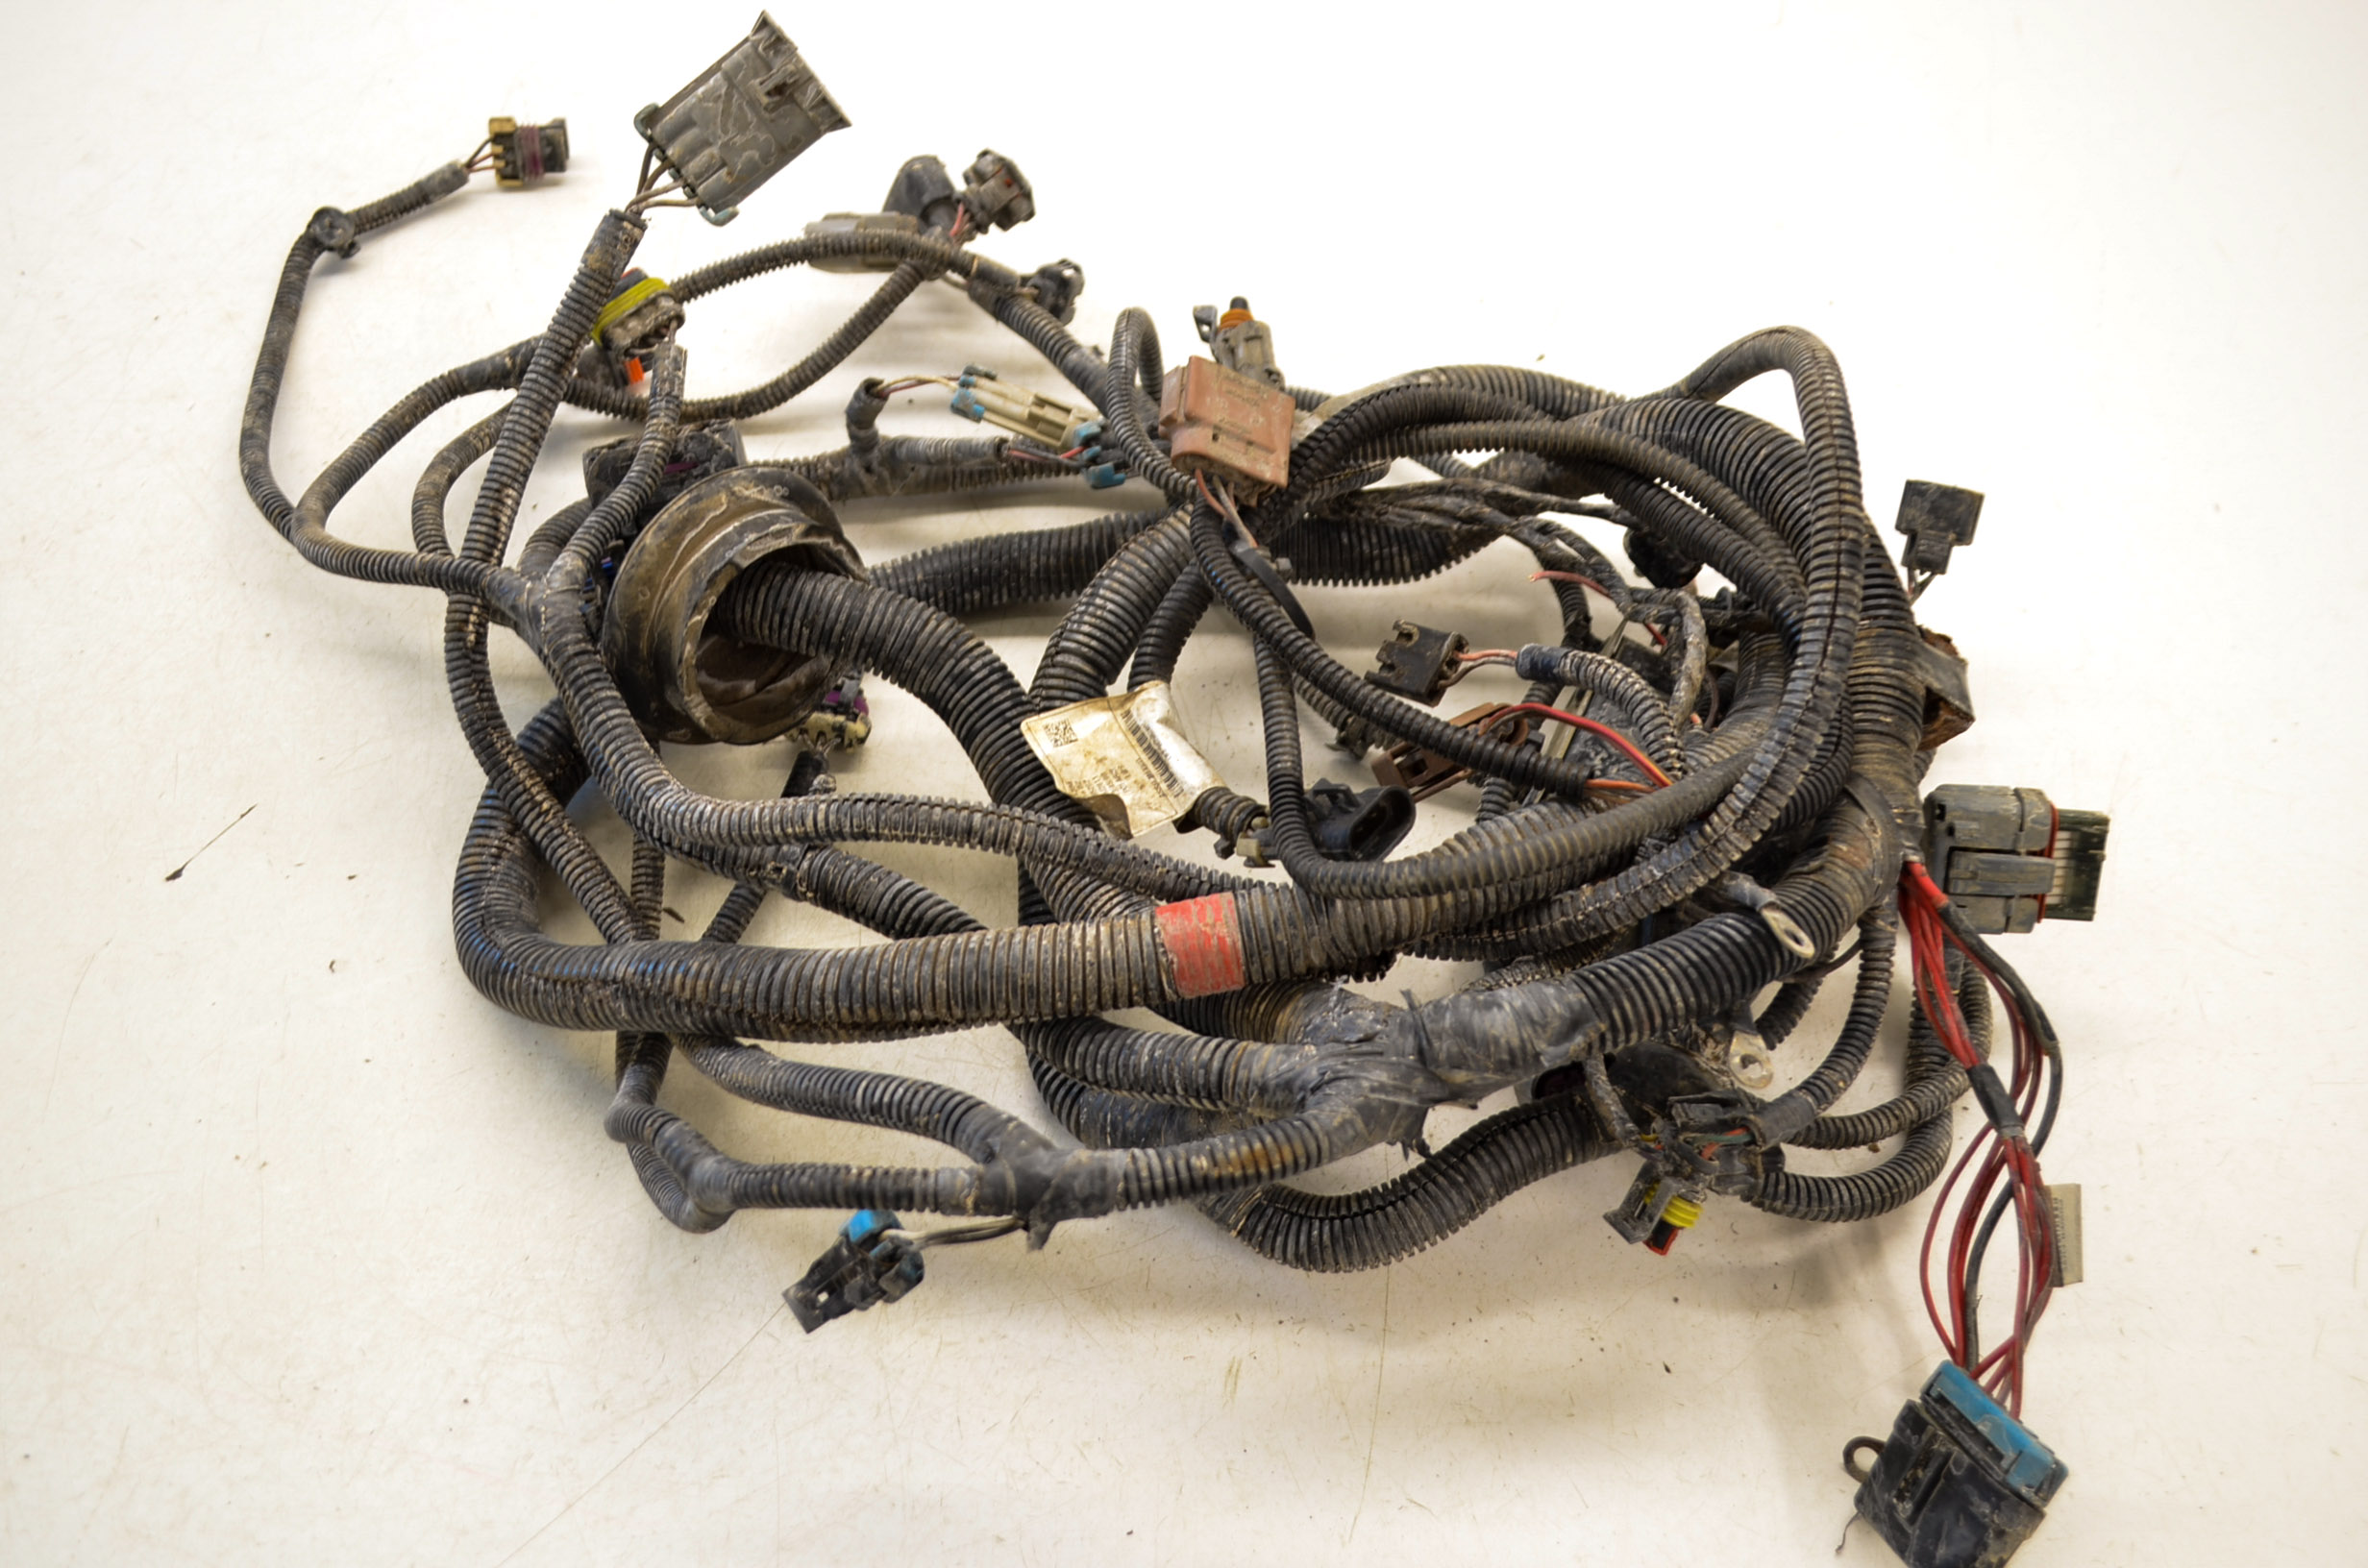 Rzr 800 Wiring Harness Trusted Diagrams Polaris 11 4x4 Efi Wire Electrical Ebay Center Seat